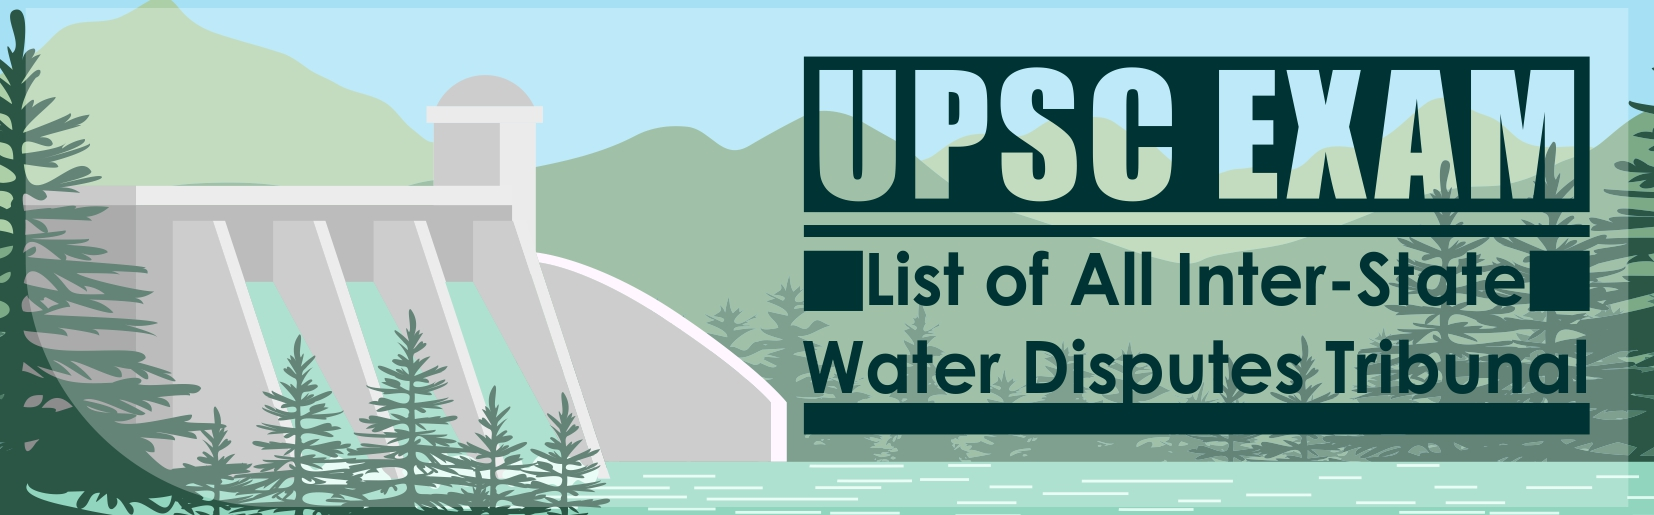 UPSC Exam: A Glimpse at All Inter-State Water Disputes Tribunal